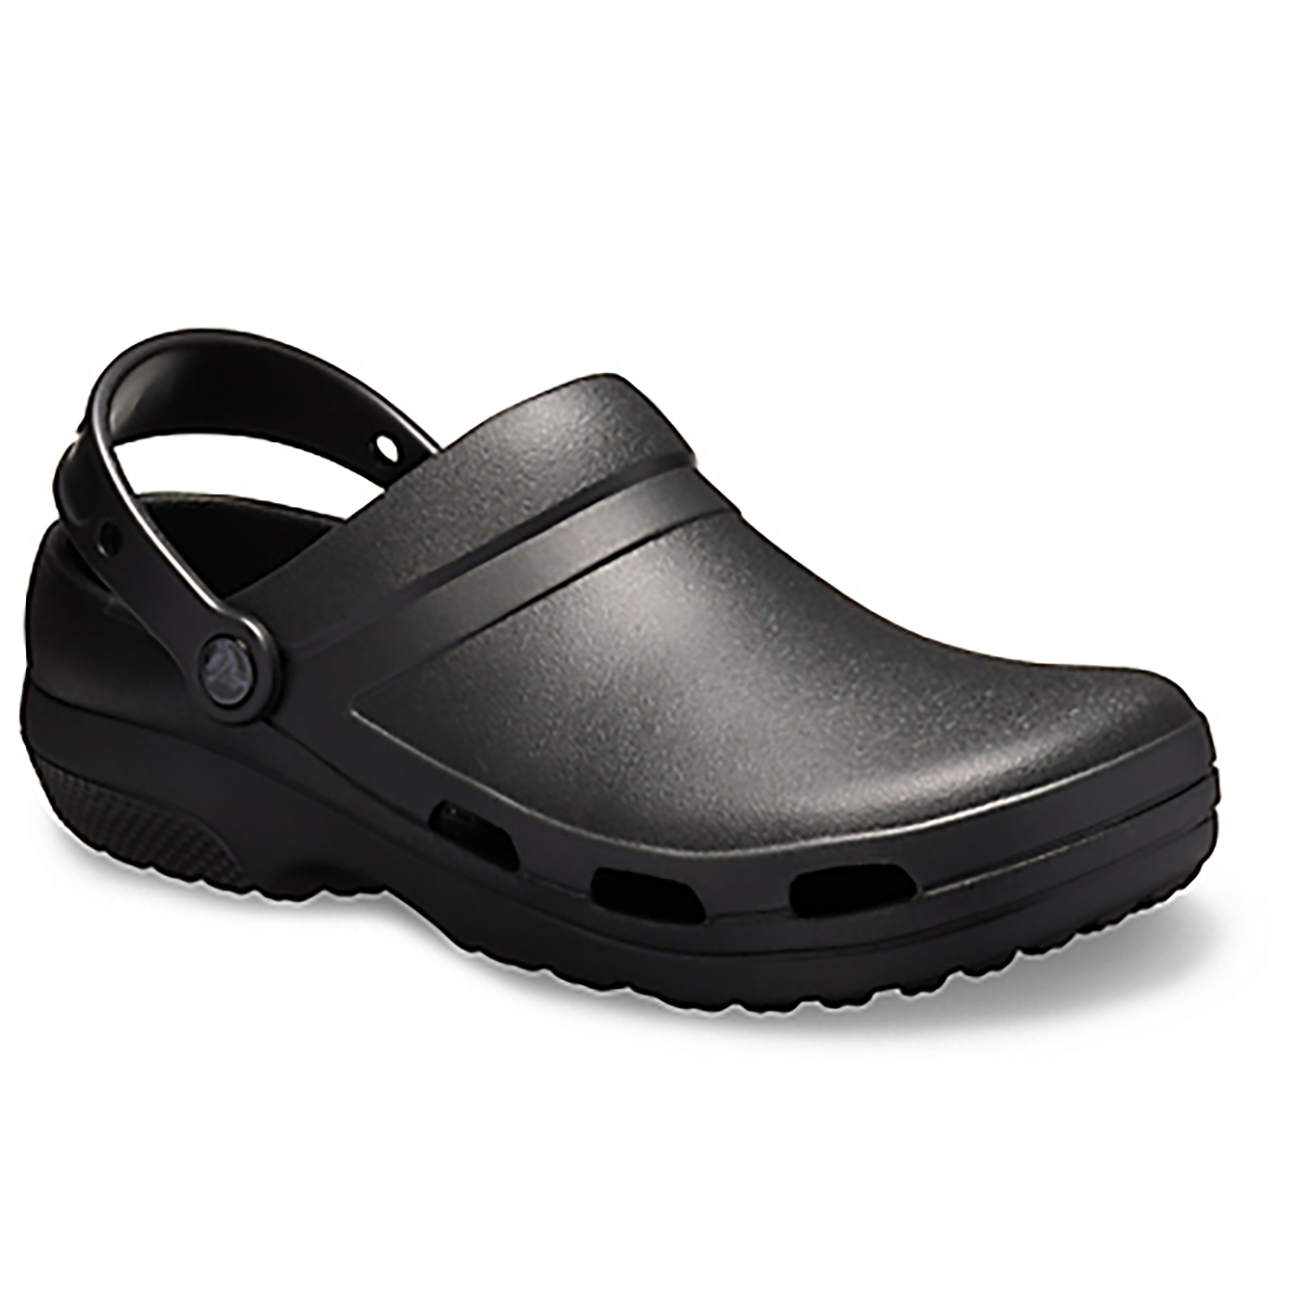 Unisex Adults Crocs Specialist II Vent Clog Lightweight Cut Out Shoes UK 3-16